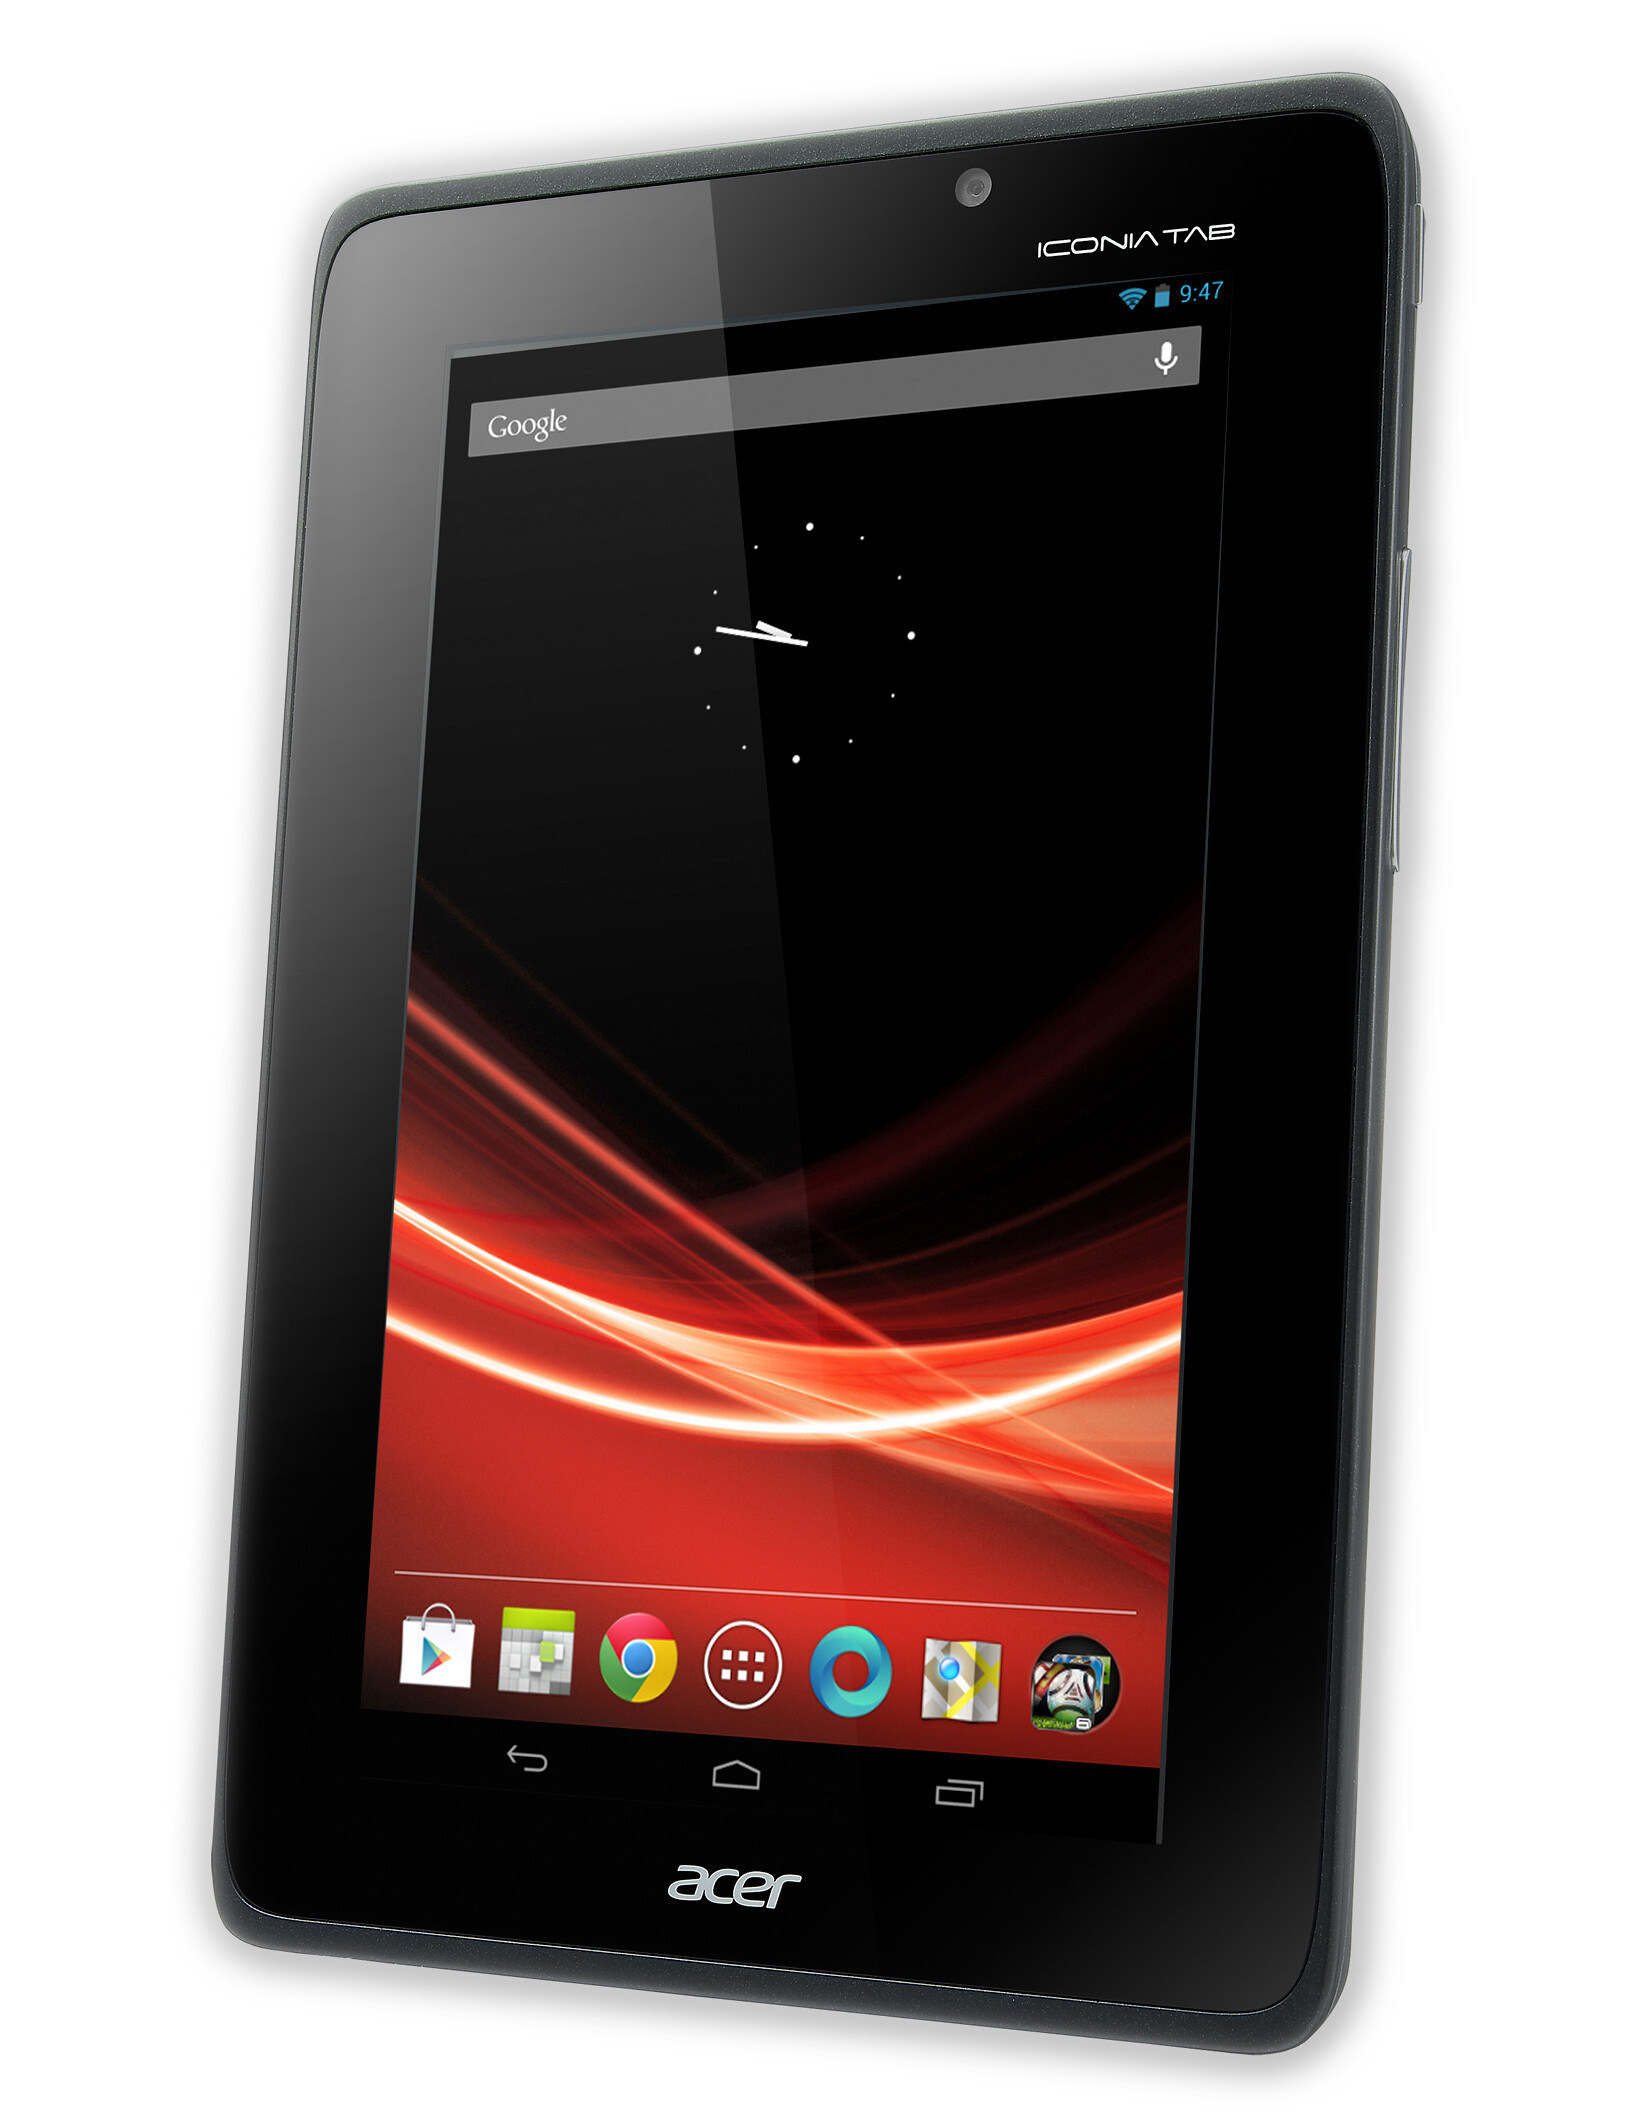 Acer ICONIA TAB A110 specs